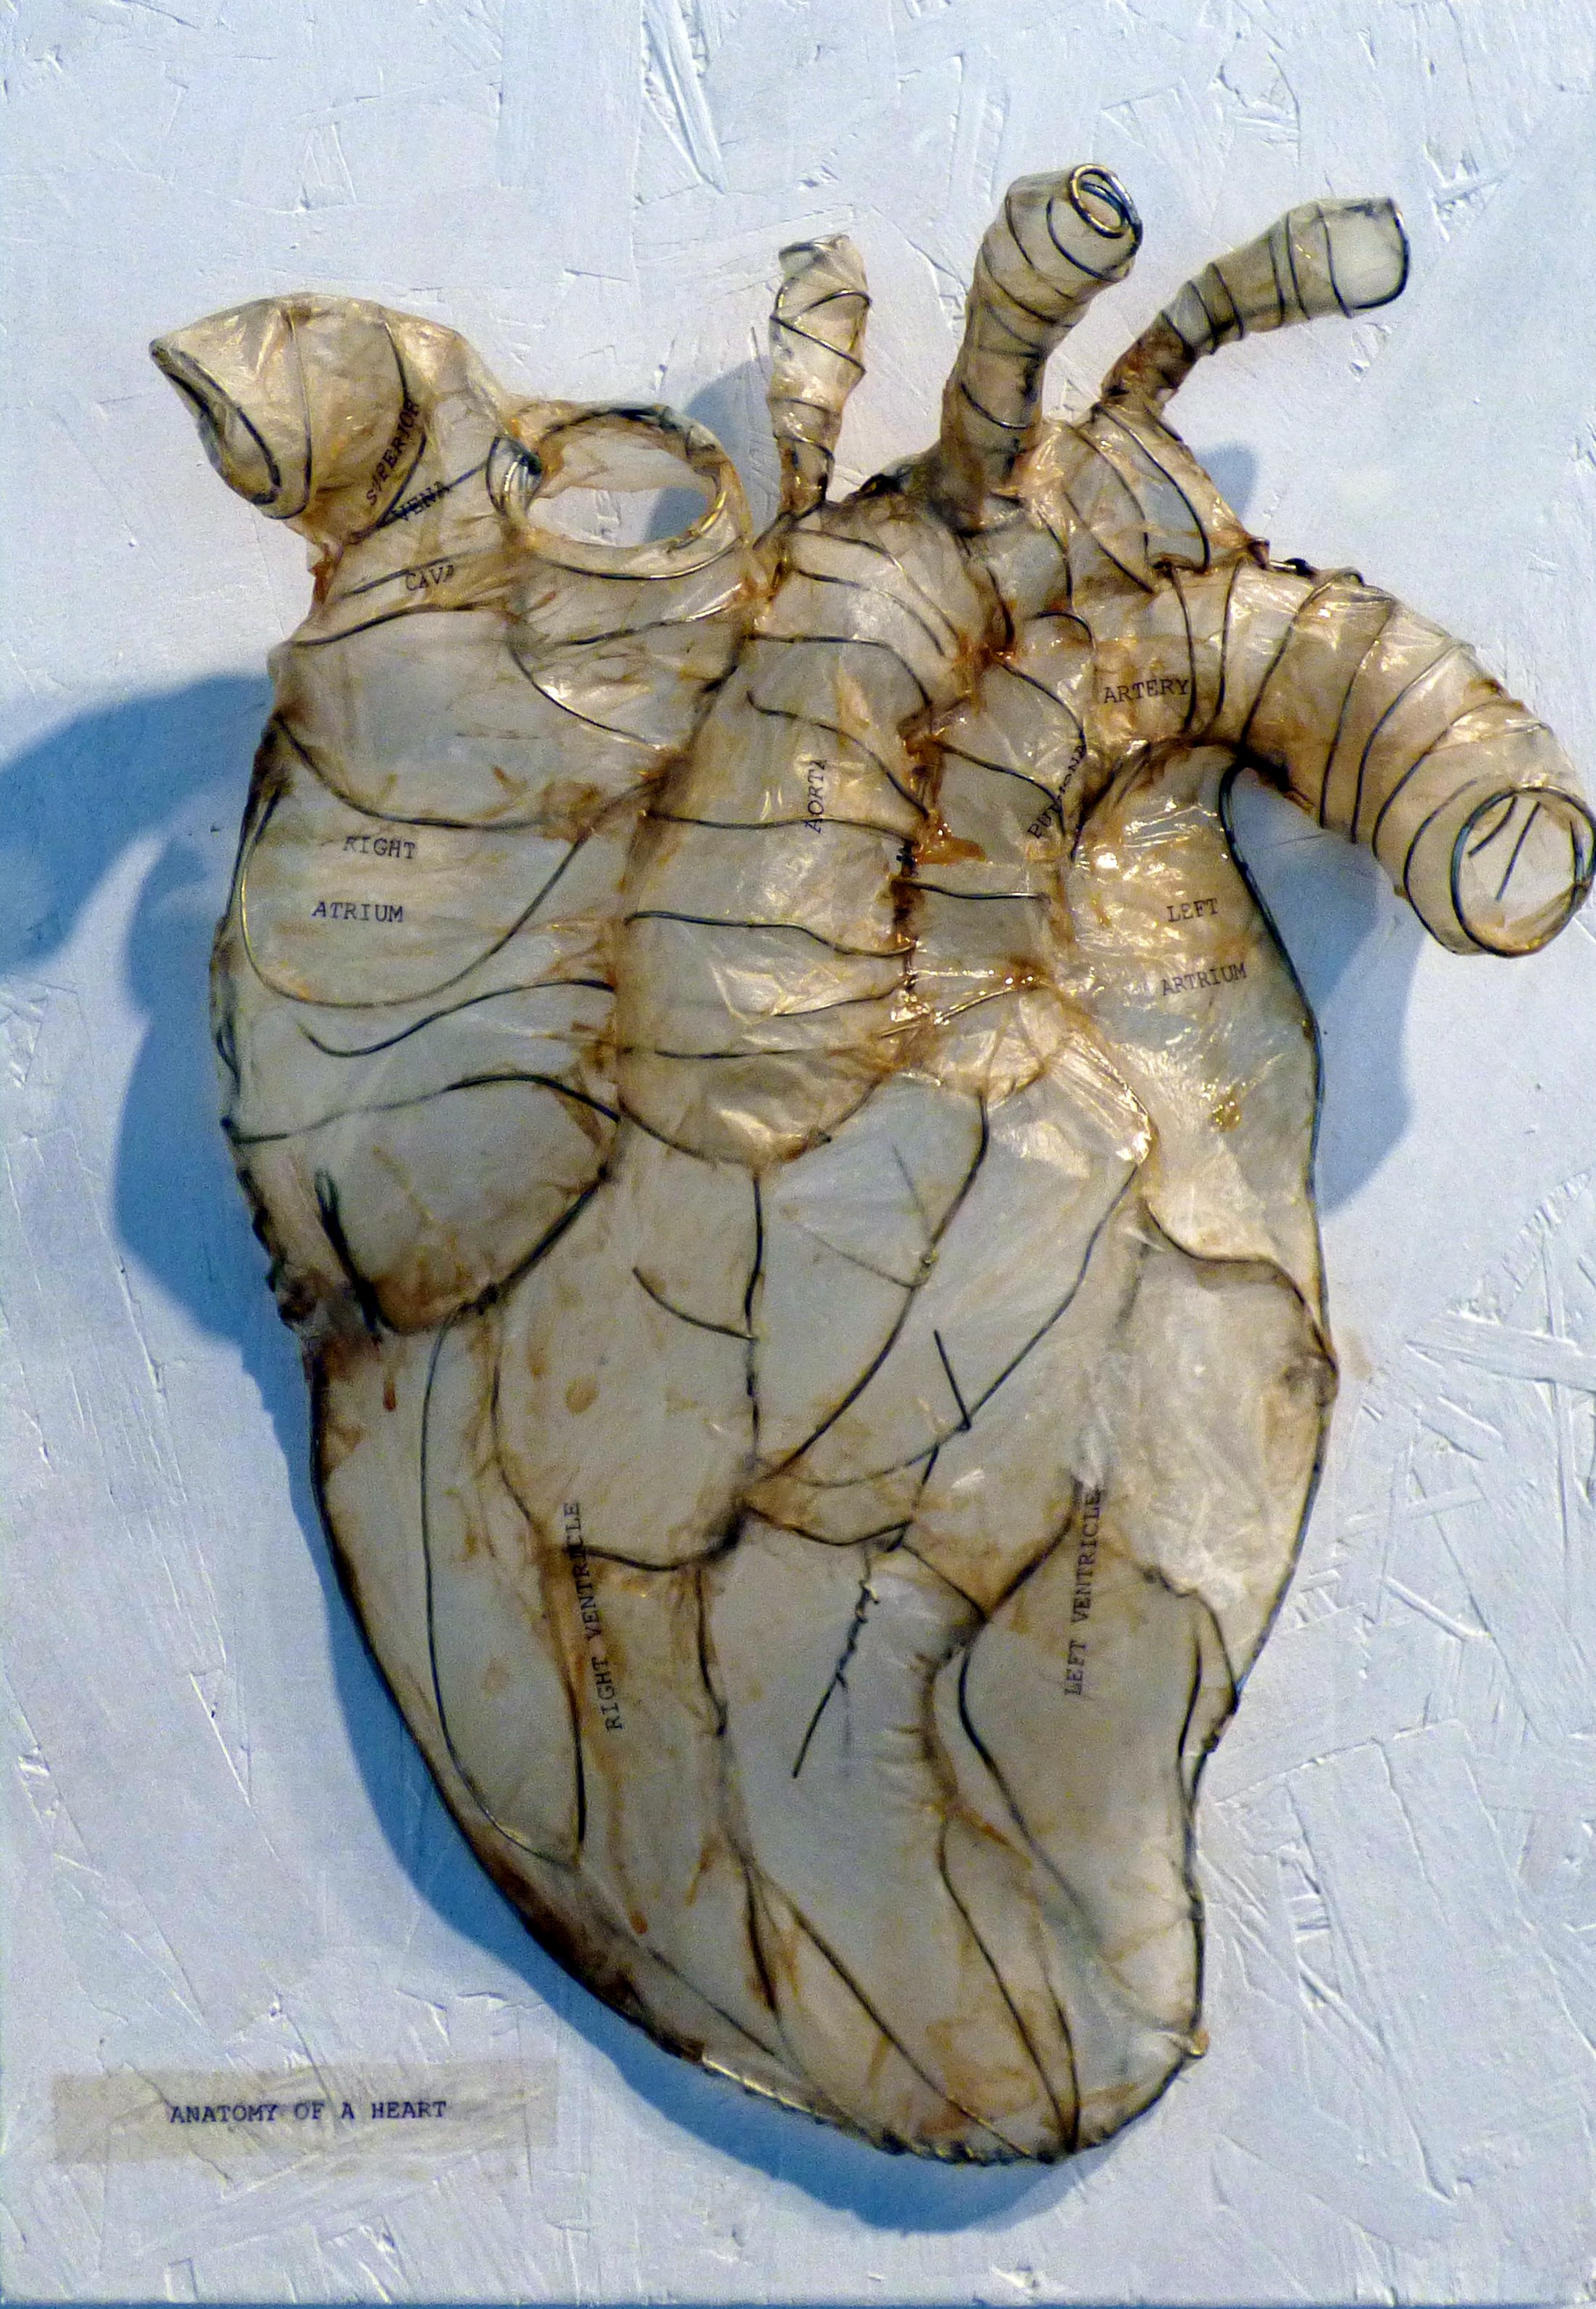 ANATOMY OF A HEART by Janine Walker, wire drawing. From The Heart exhibition, St Helens, Feb 2020